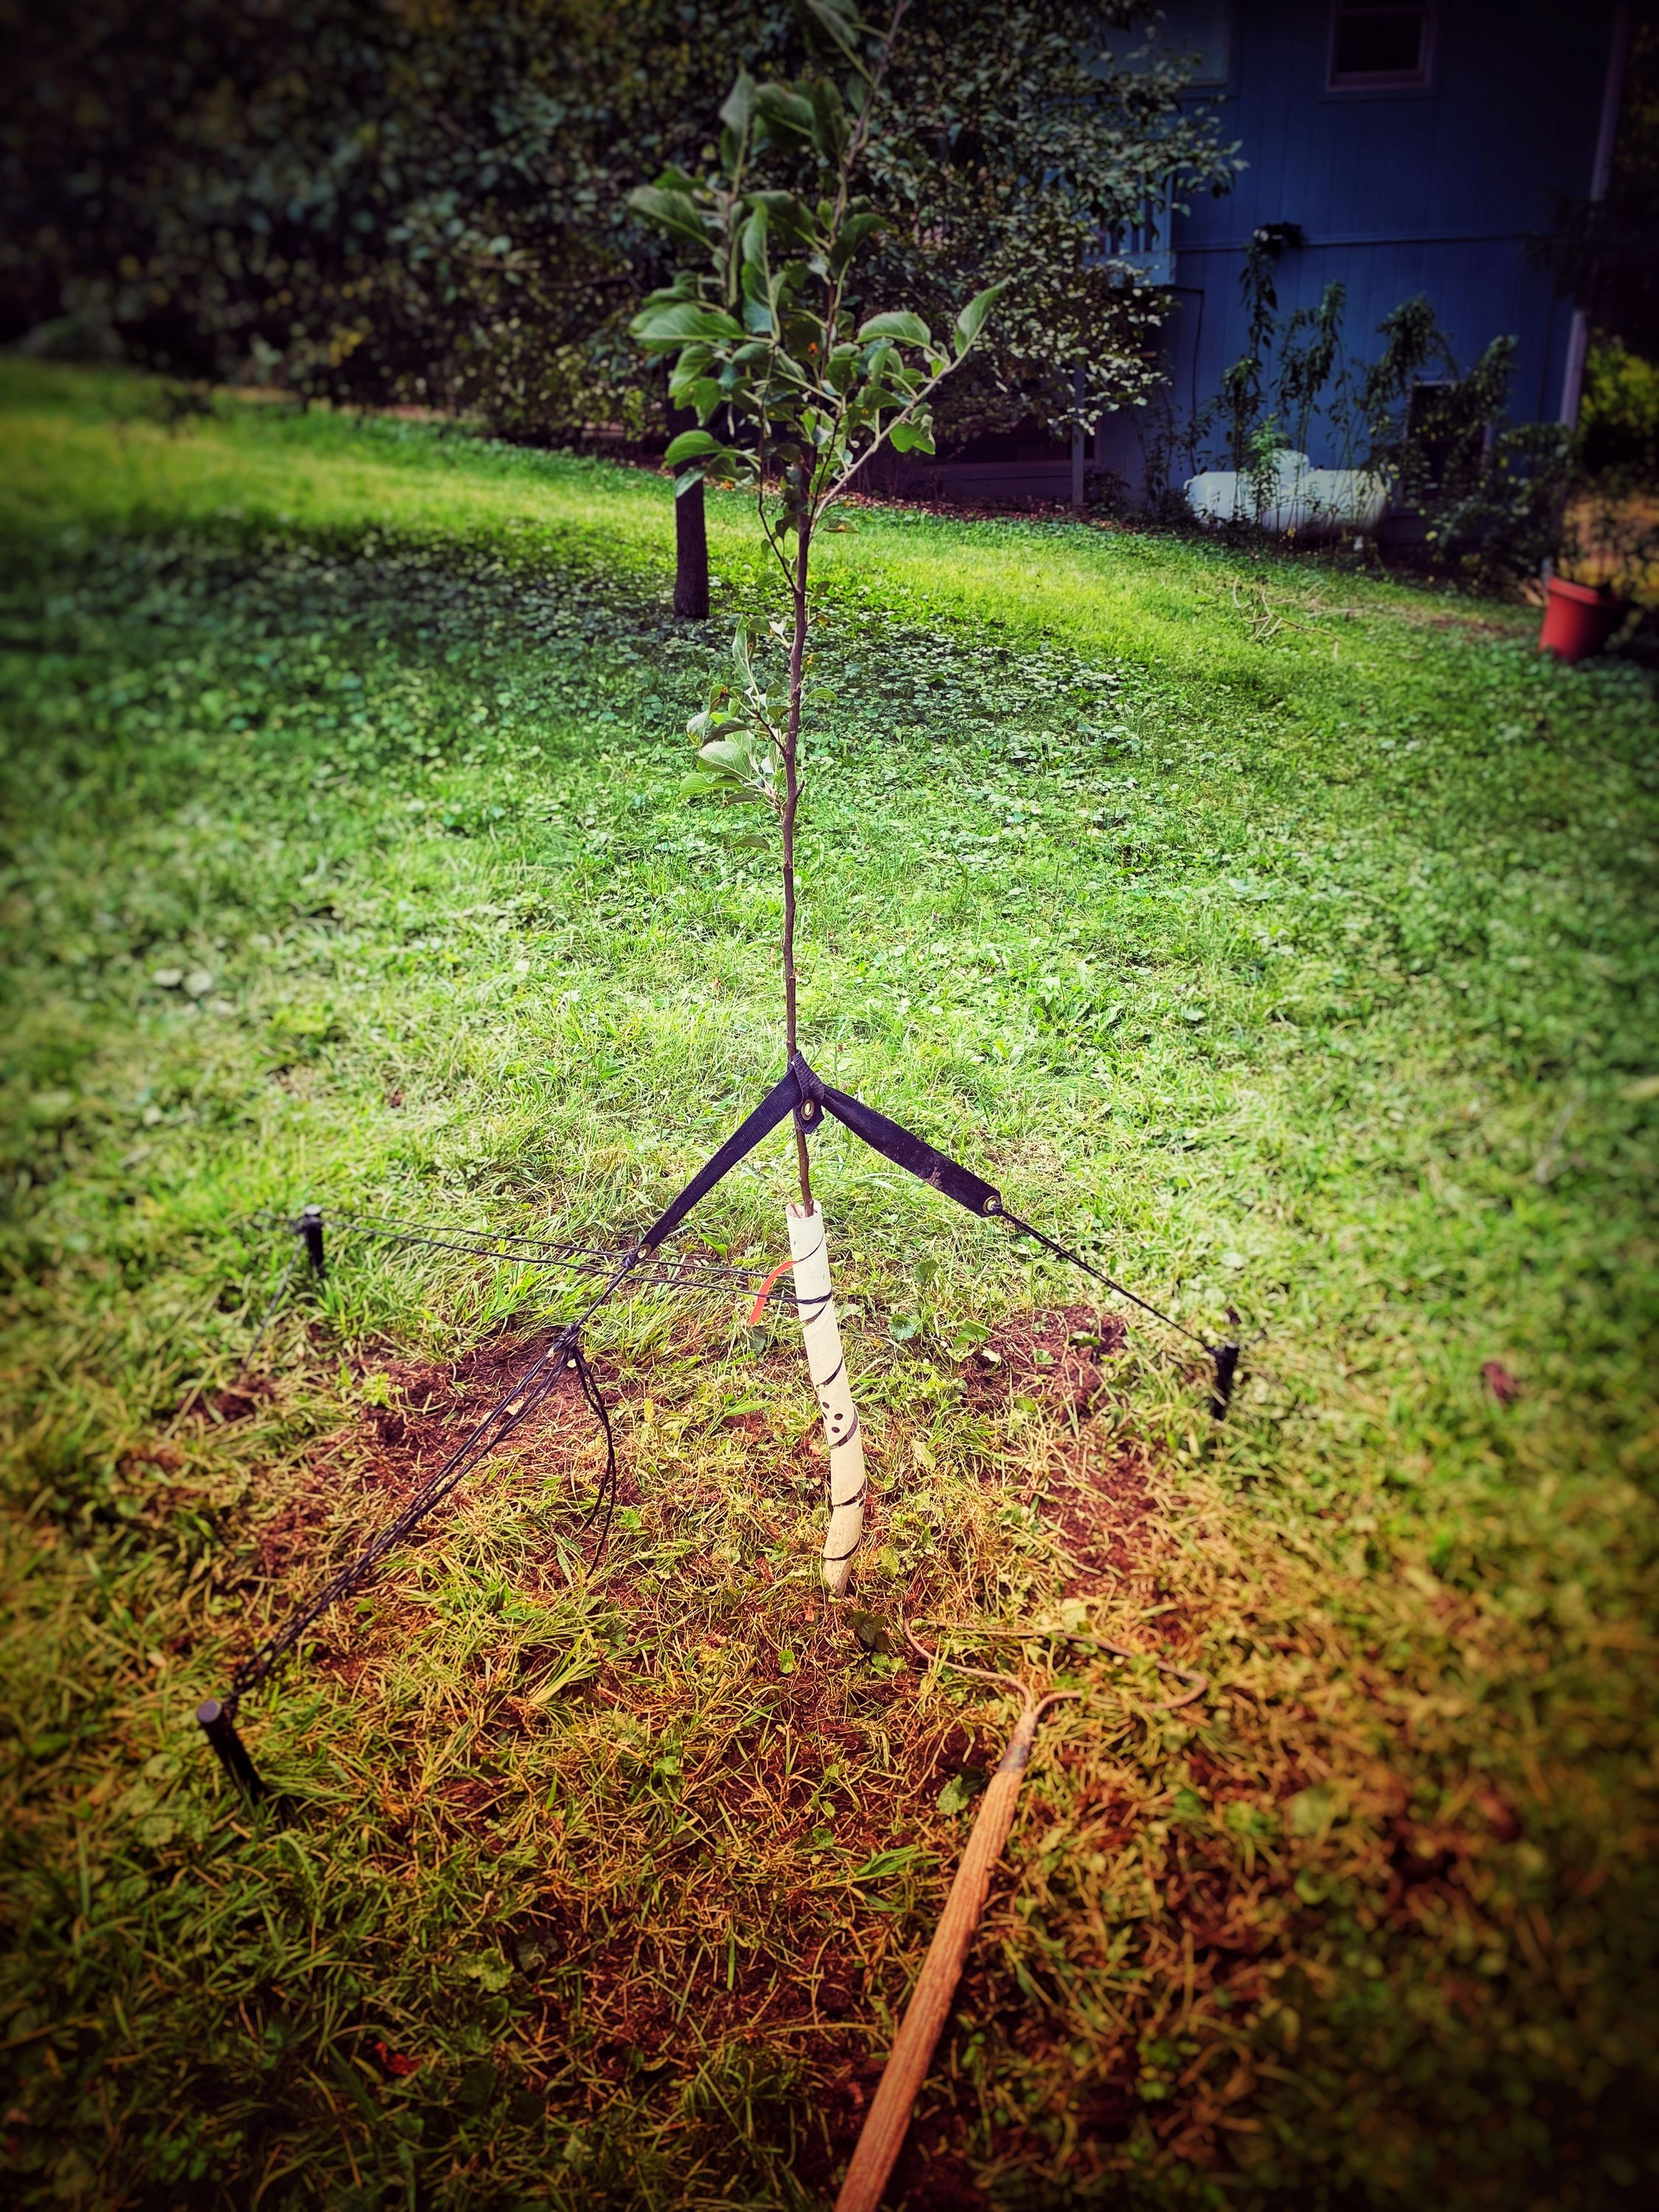 An apple tree sampling with the ground around it scraped and hoed.